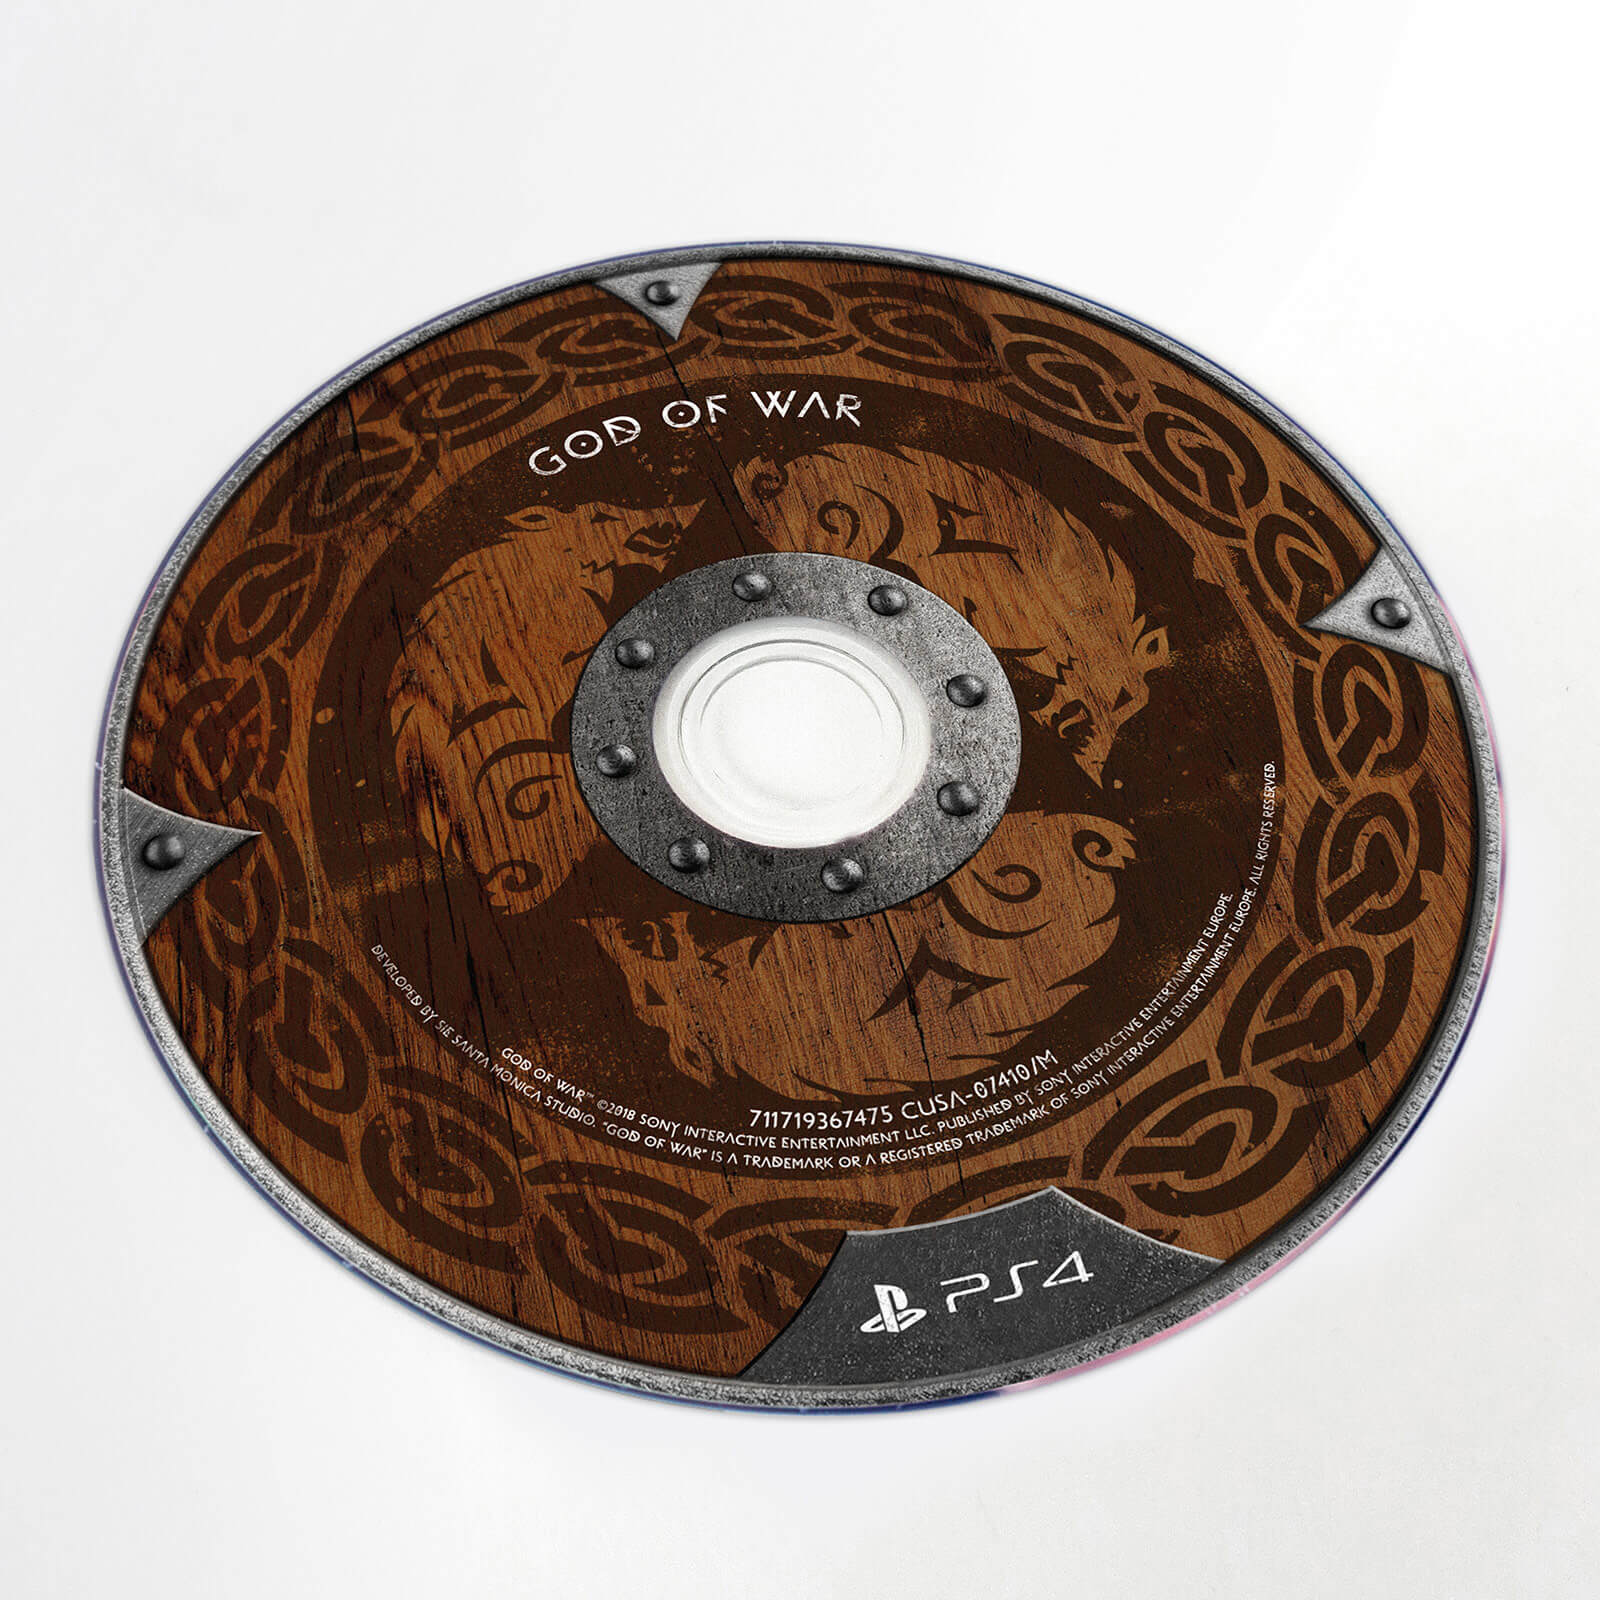 God Of War Media Kit - Disc